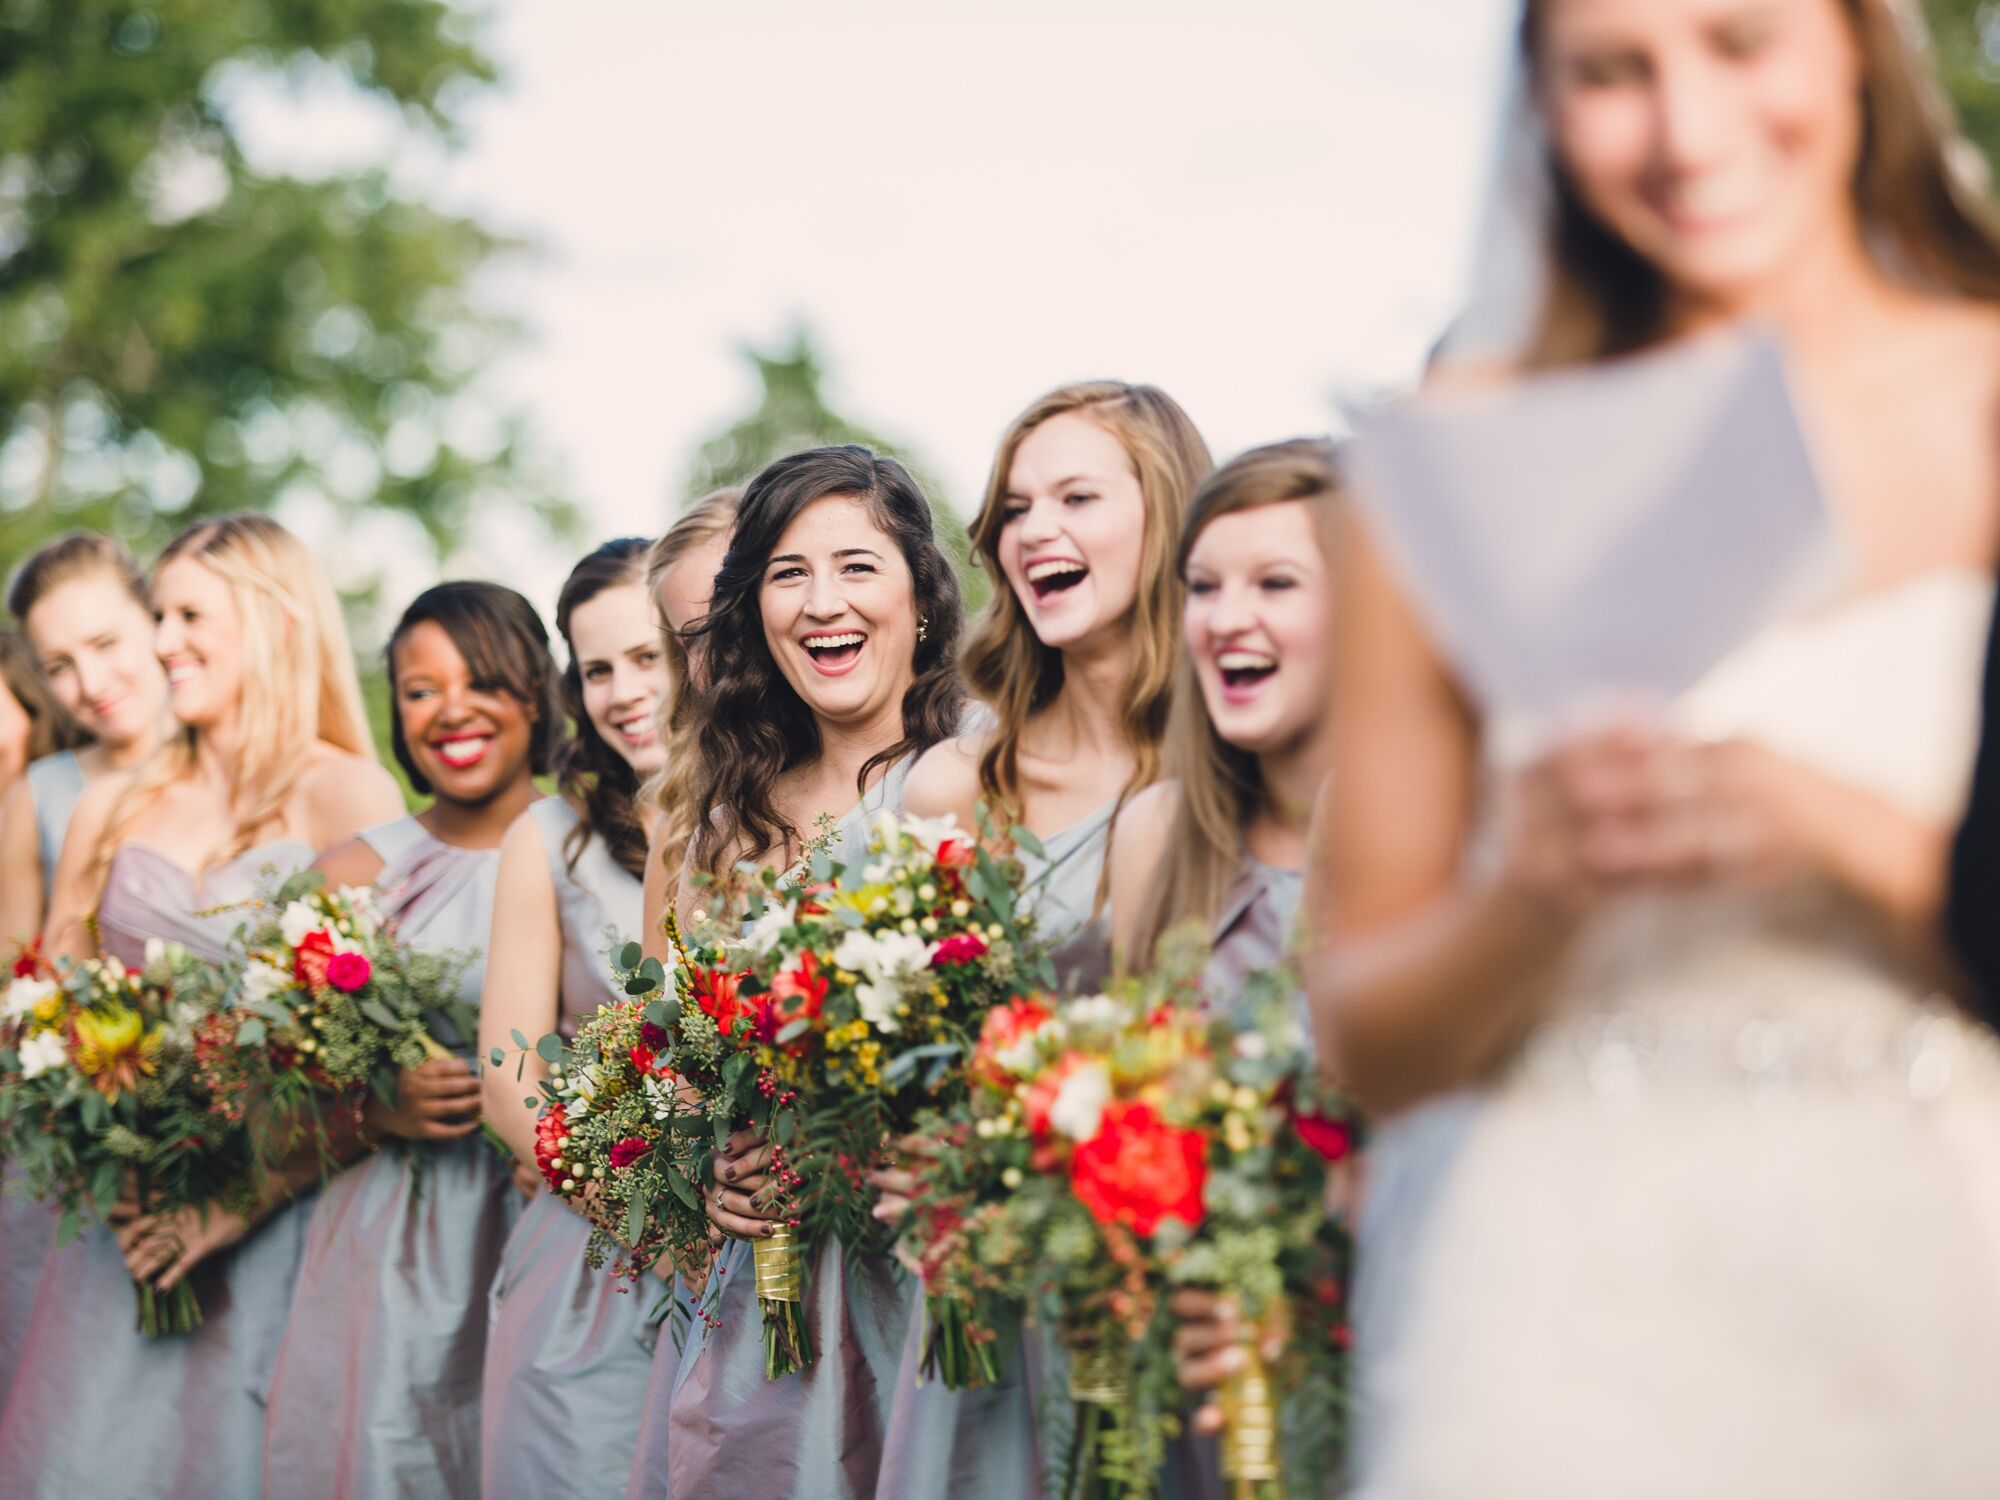 12 Ways to Keep Your Bridesmaids Happy